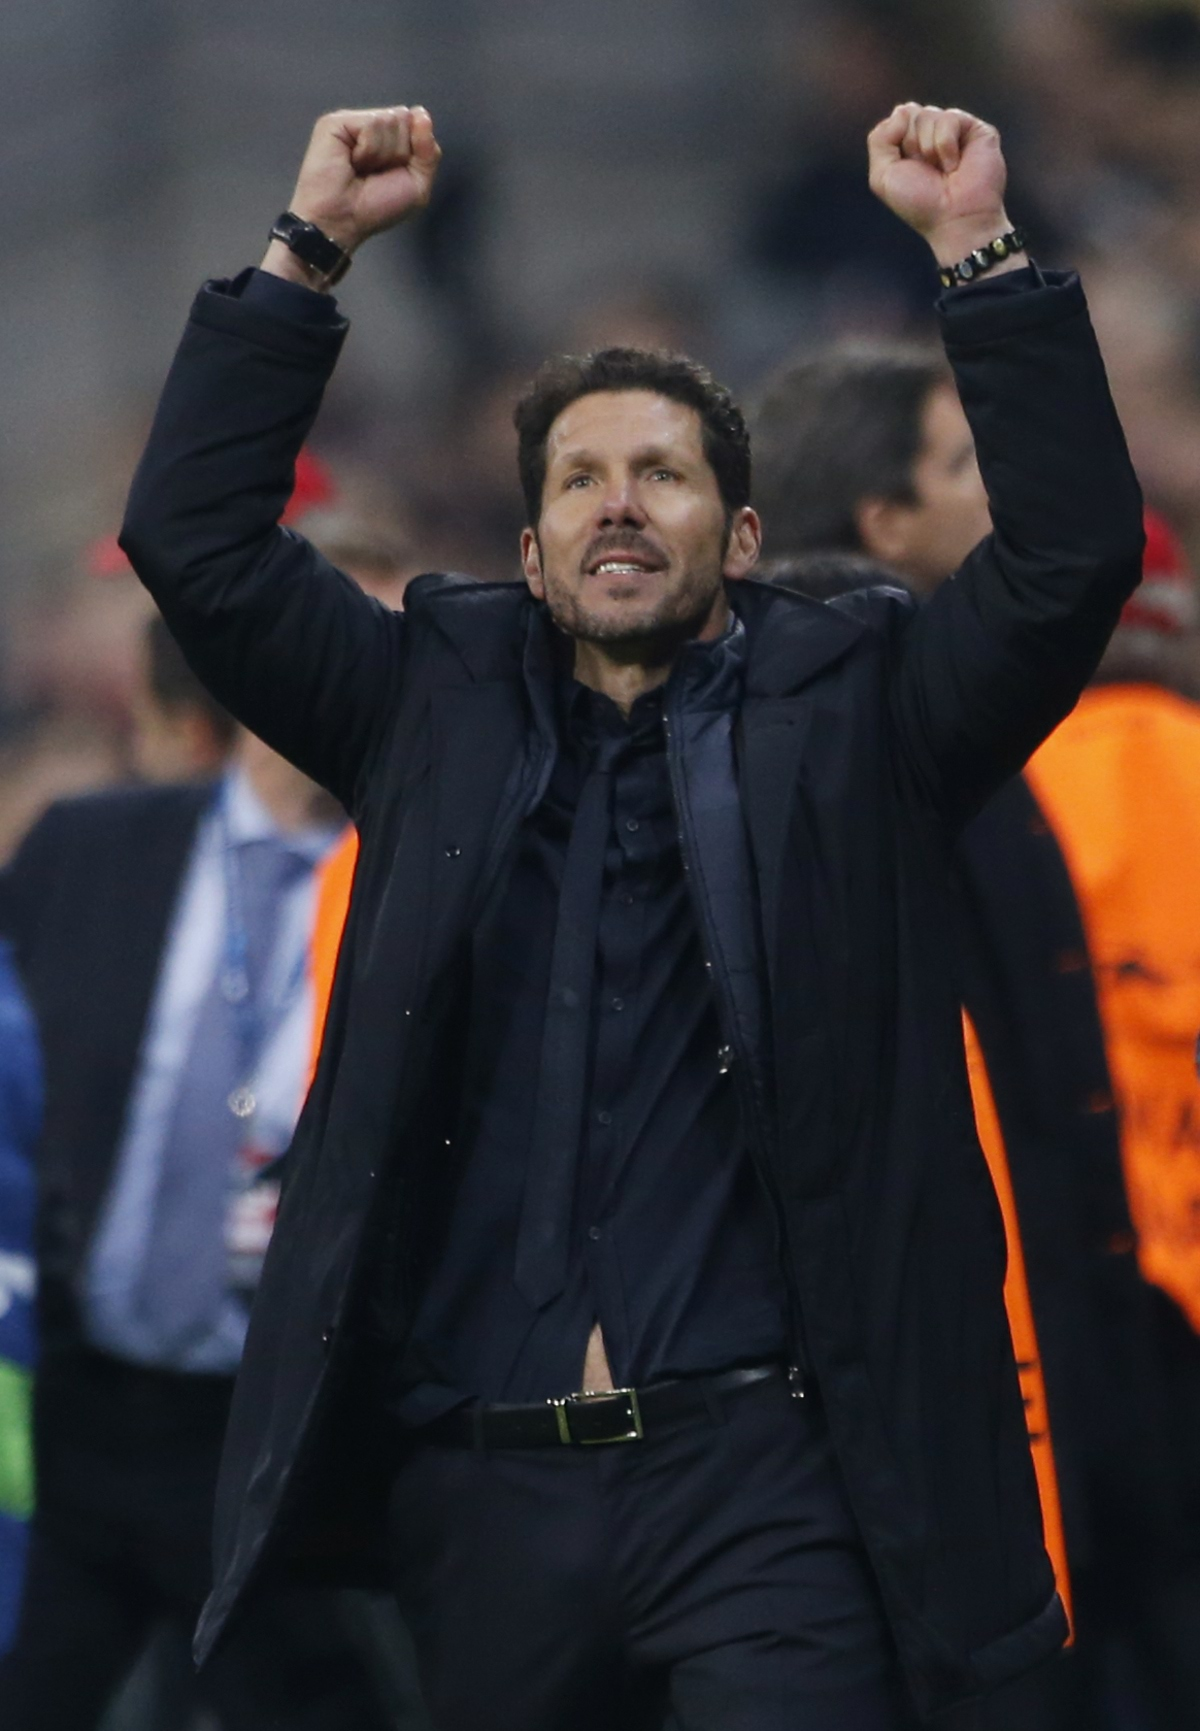 Britain Football Soccer - Bayern Munich v Atletico Madrid - UEFA Champions League Semi Final Second Leg - Allianz Arena, Munich - 3/5/16 Atletico Madrid coach Diego Simeone celebrates after the game Reuters / Michaela Rehle Livepic EDITORIAL USE ONLY.